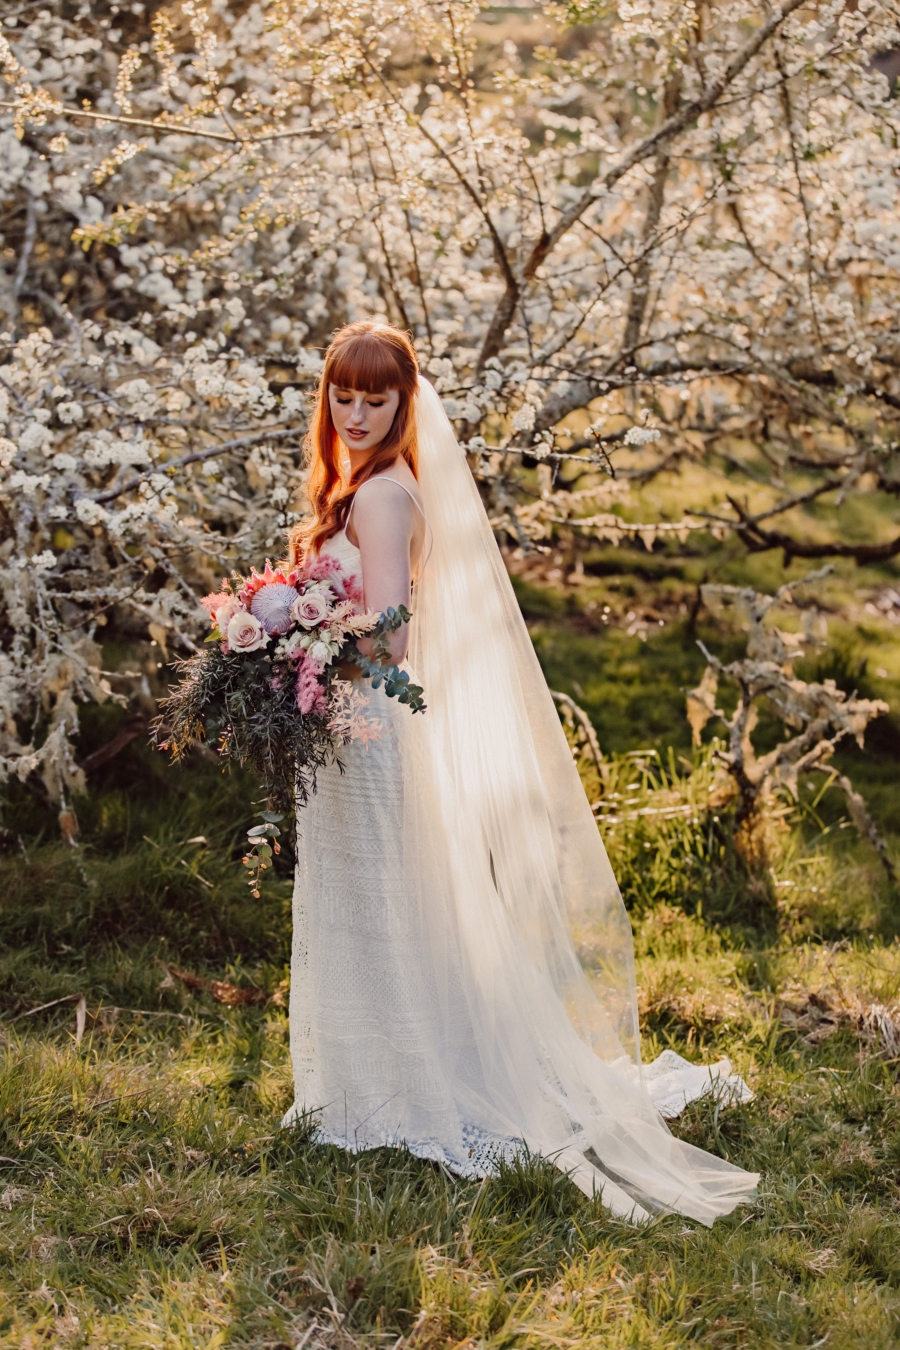 Bride standing below blossoming tree in orchard holding bouquet of flowers